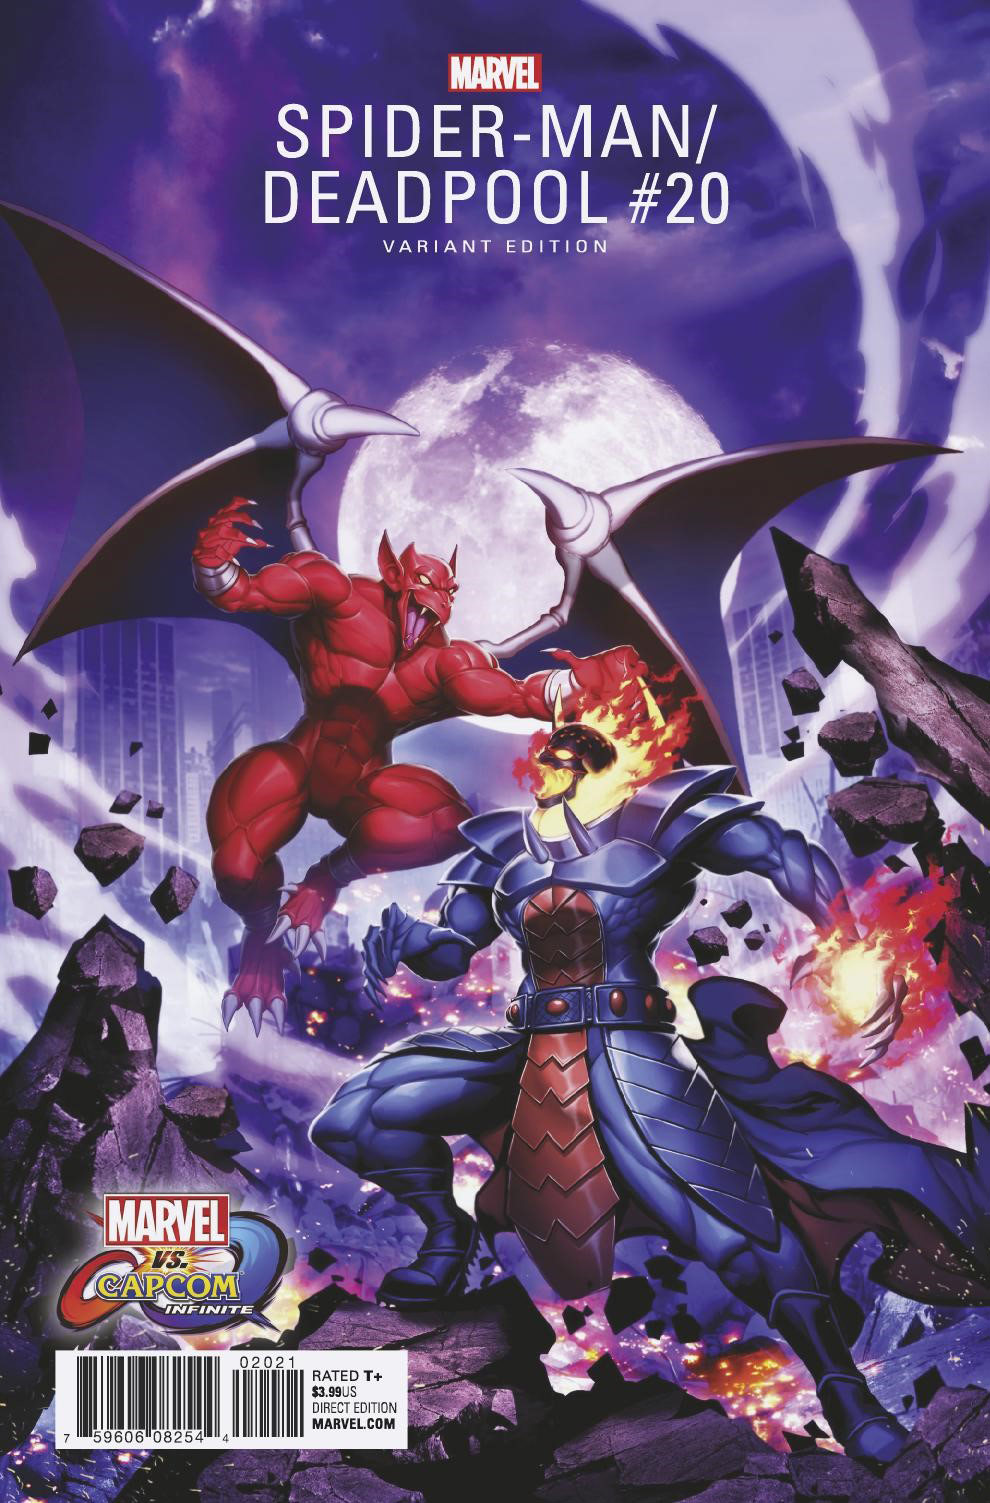 Marvel vs. Capcom: Infinite variant covers 4 out of 4 image gallery